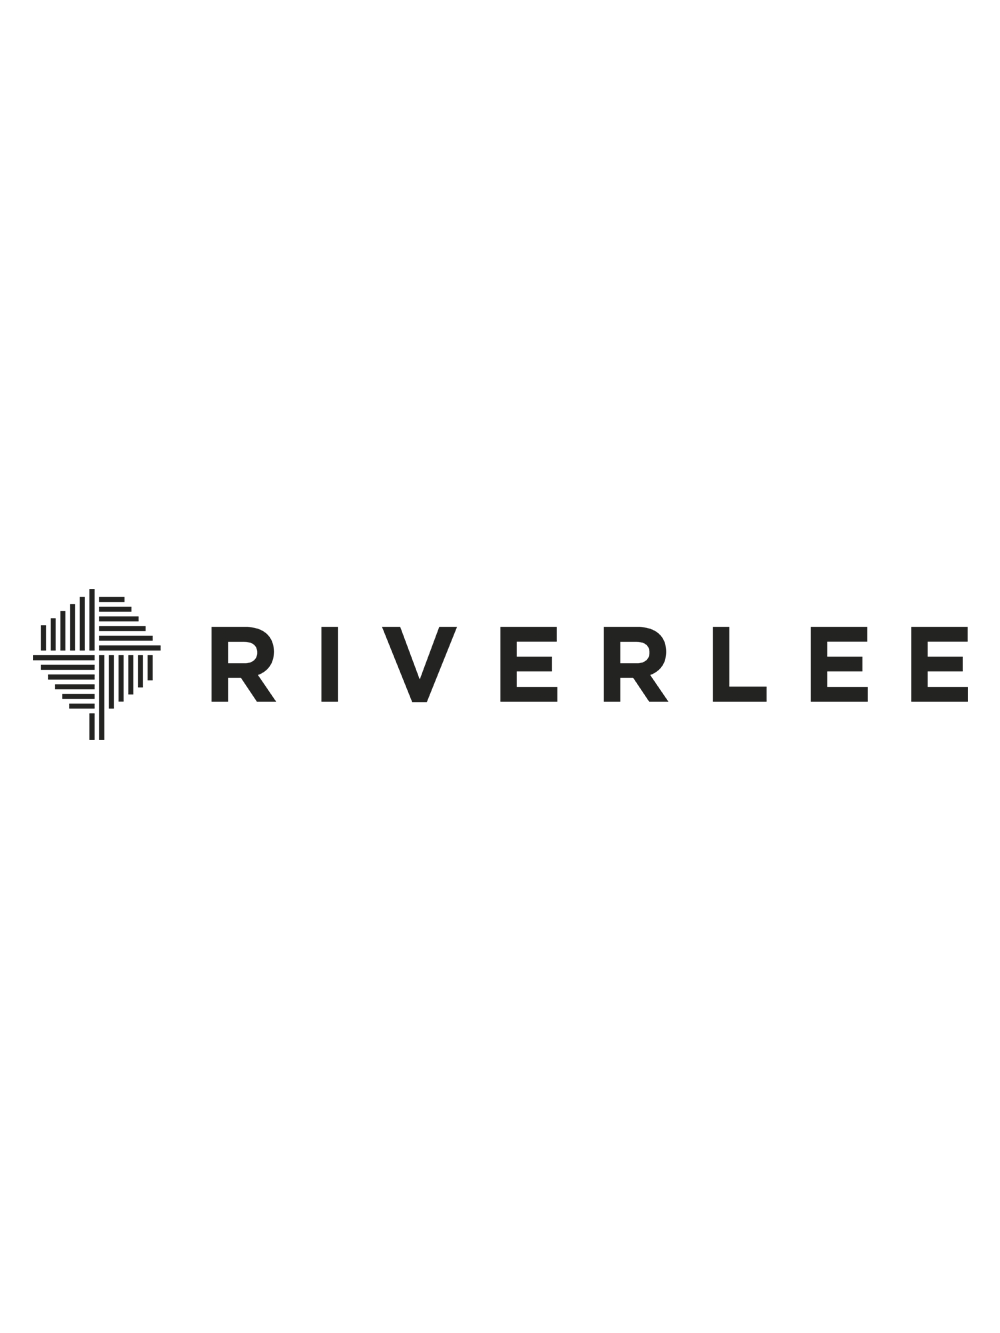 riverlee_1000x1333.png